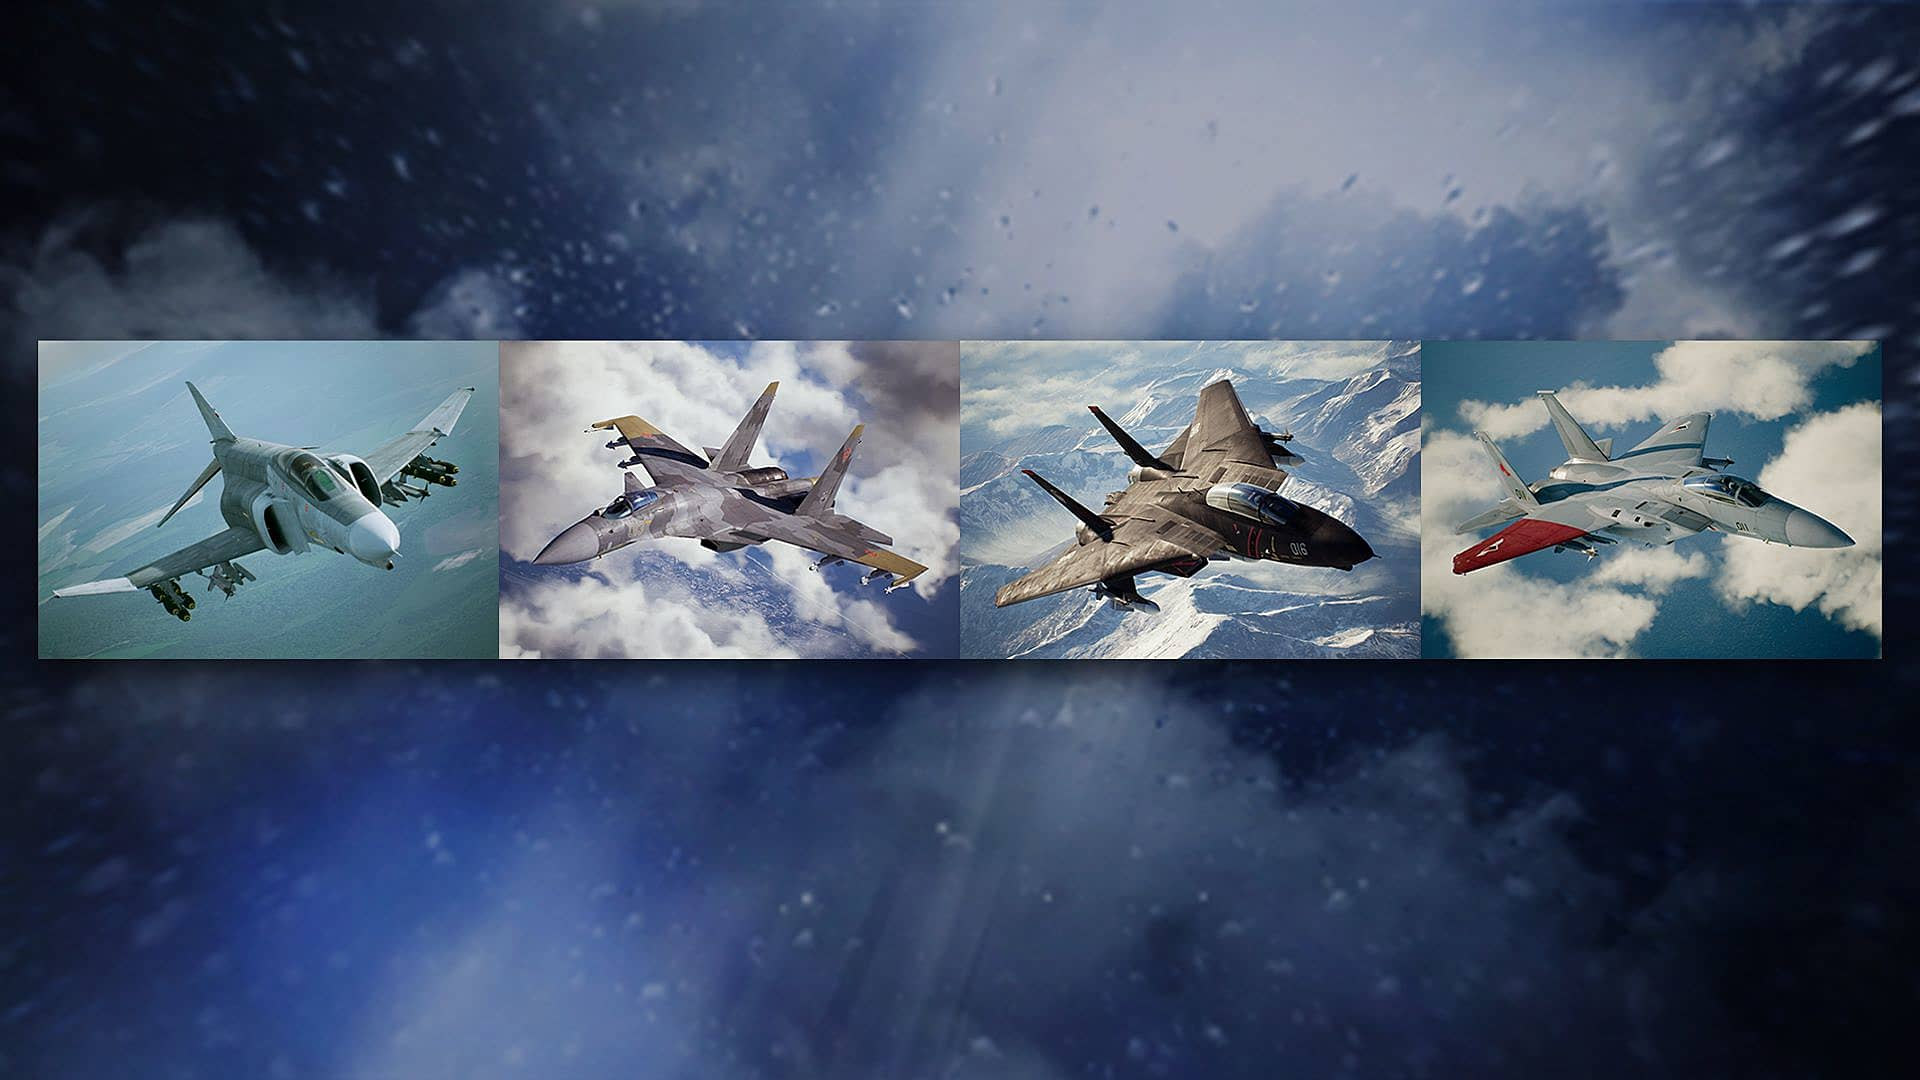 ⭐ Ace combat 5 cheats unlock all planes | game ps2: Ace